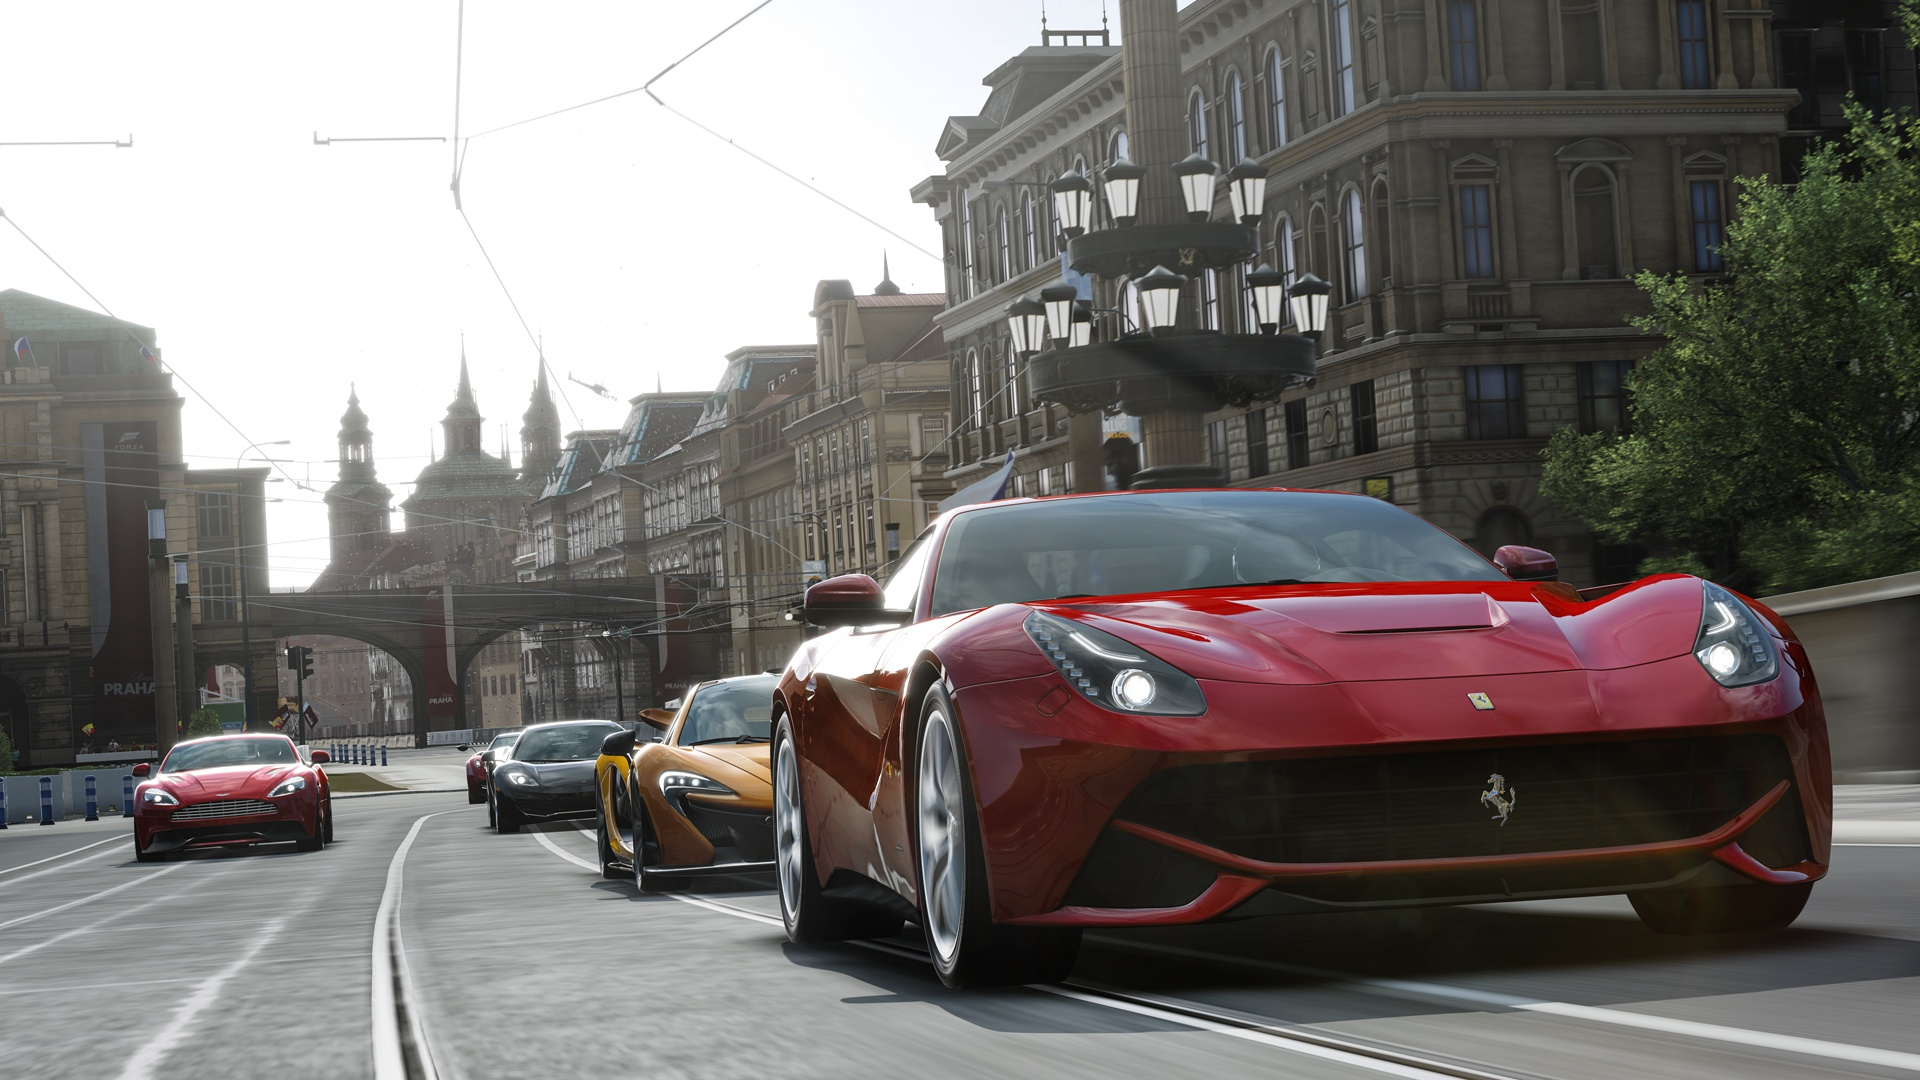 Snag a sweet new ride in Forza Horizon 2